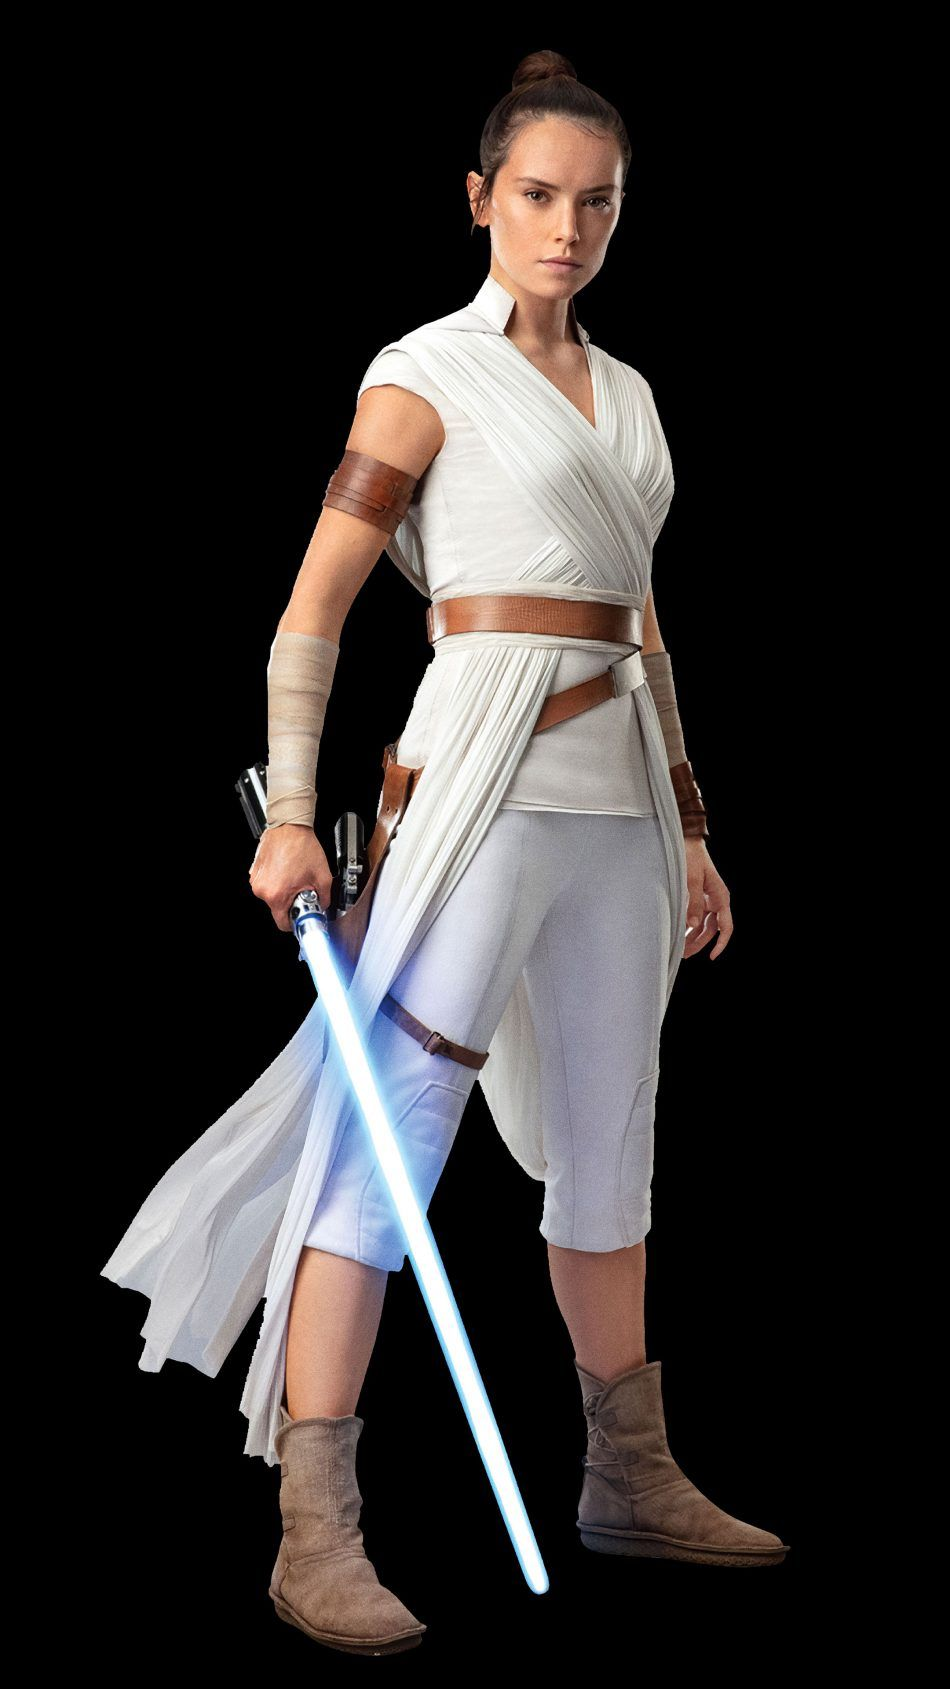 Daisy Ridley As Rey Star Wars The Rise Of Skywalker 2019 In 2020 Rey Star Wars Star Wars Outfits Ray Star Wars